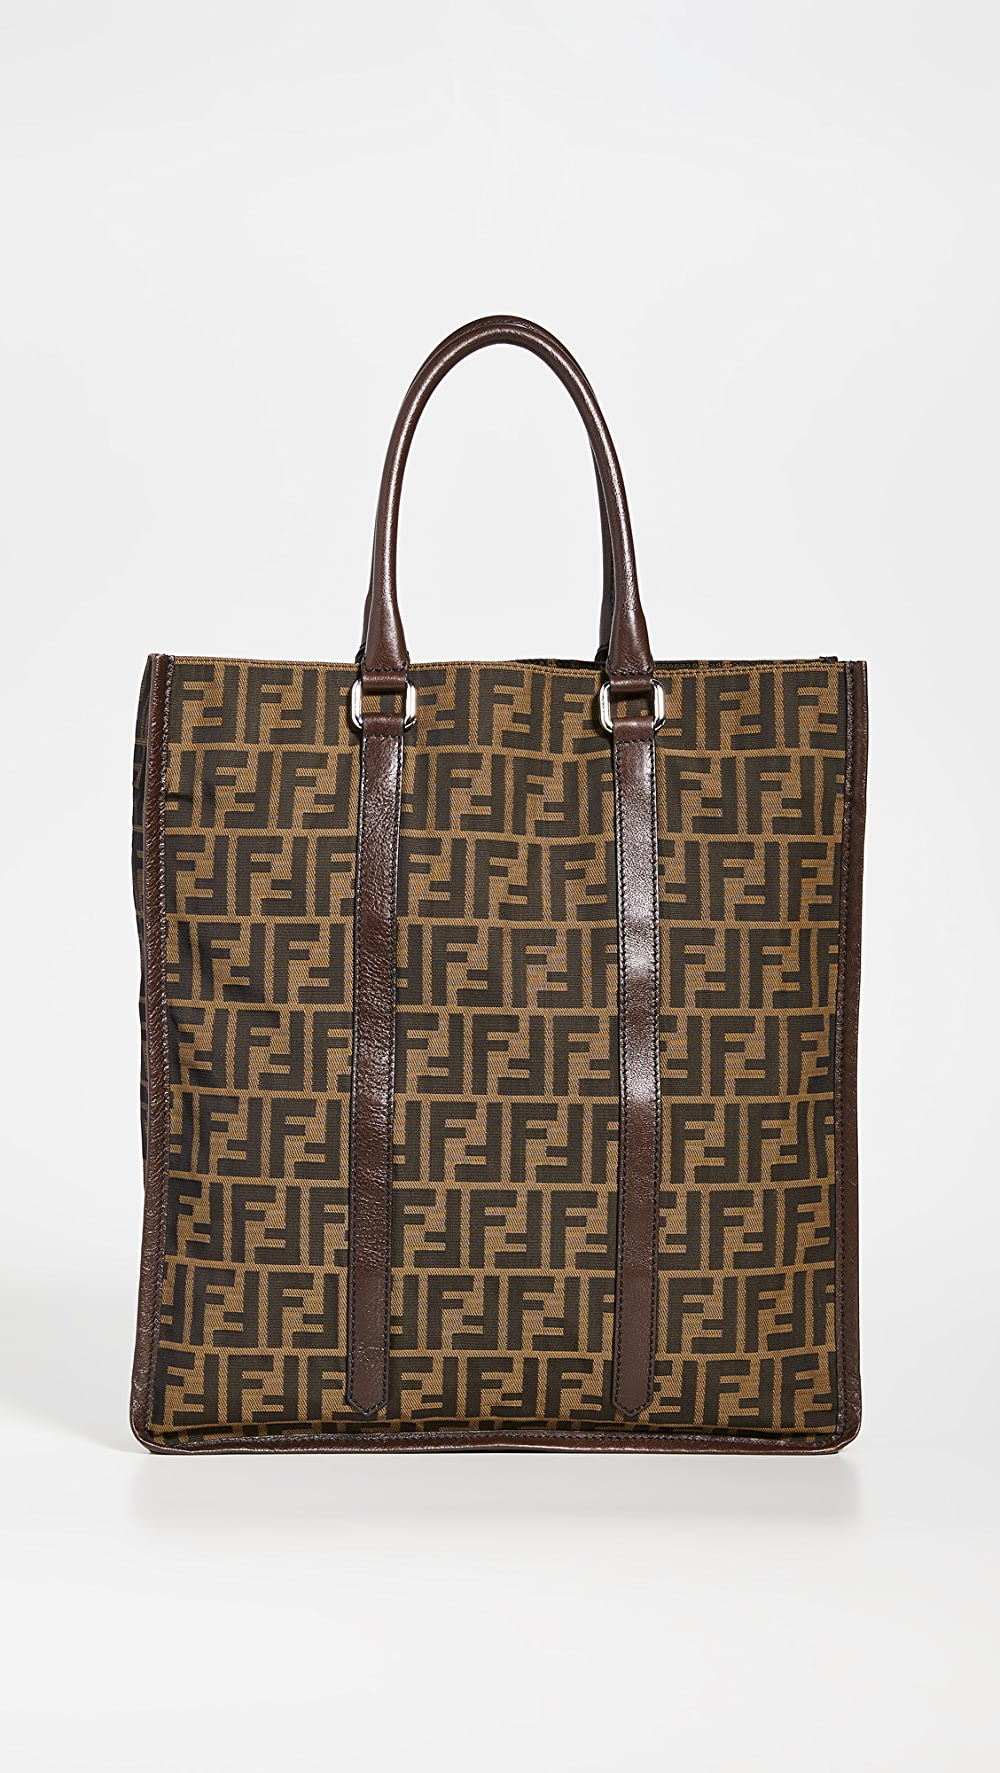 Adaptable What Goes Around Comes Around - Fendi Brown Zucca Tote Bag Consumers First